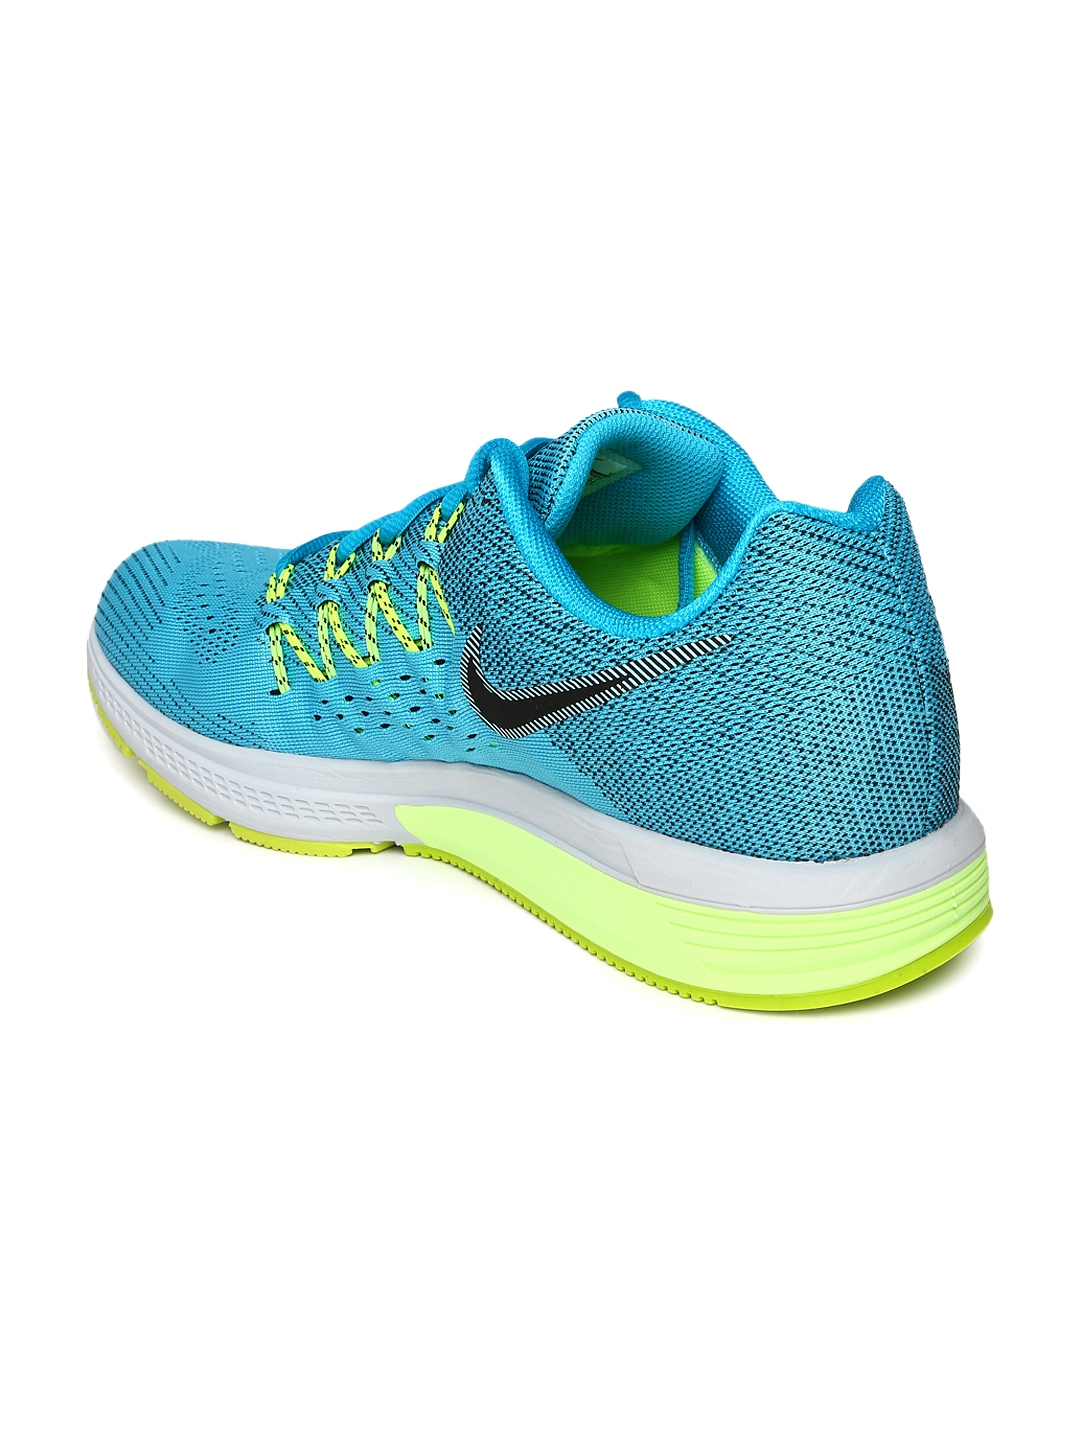 e8257fb7962 Buy Nike Men Blue Air Zoom Vomero 10 Running Shoes - Sports Shoes ...